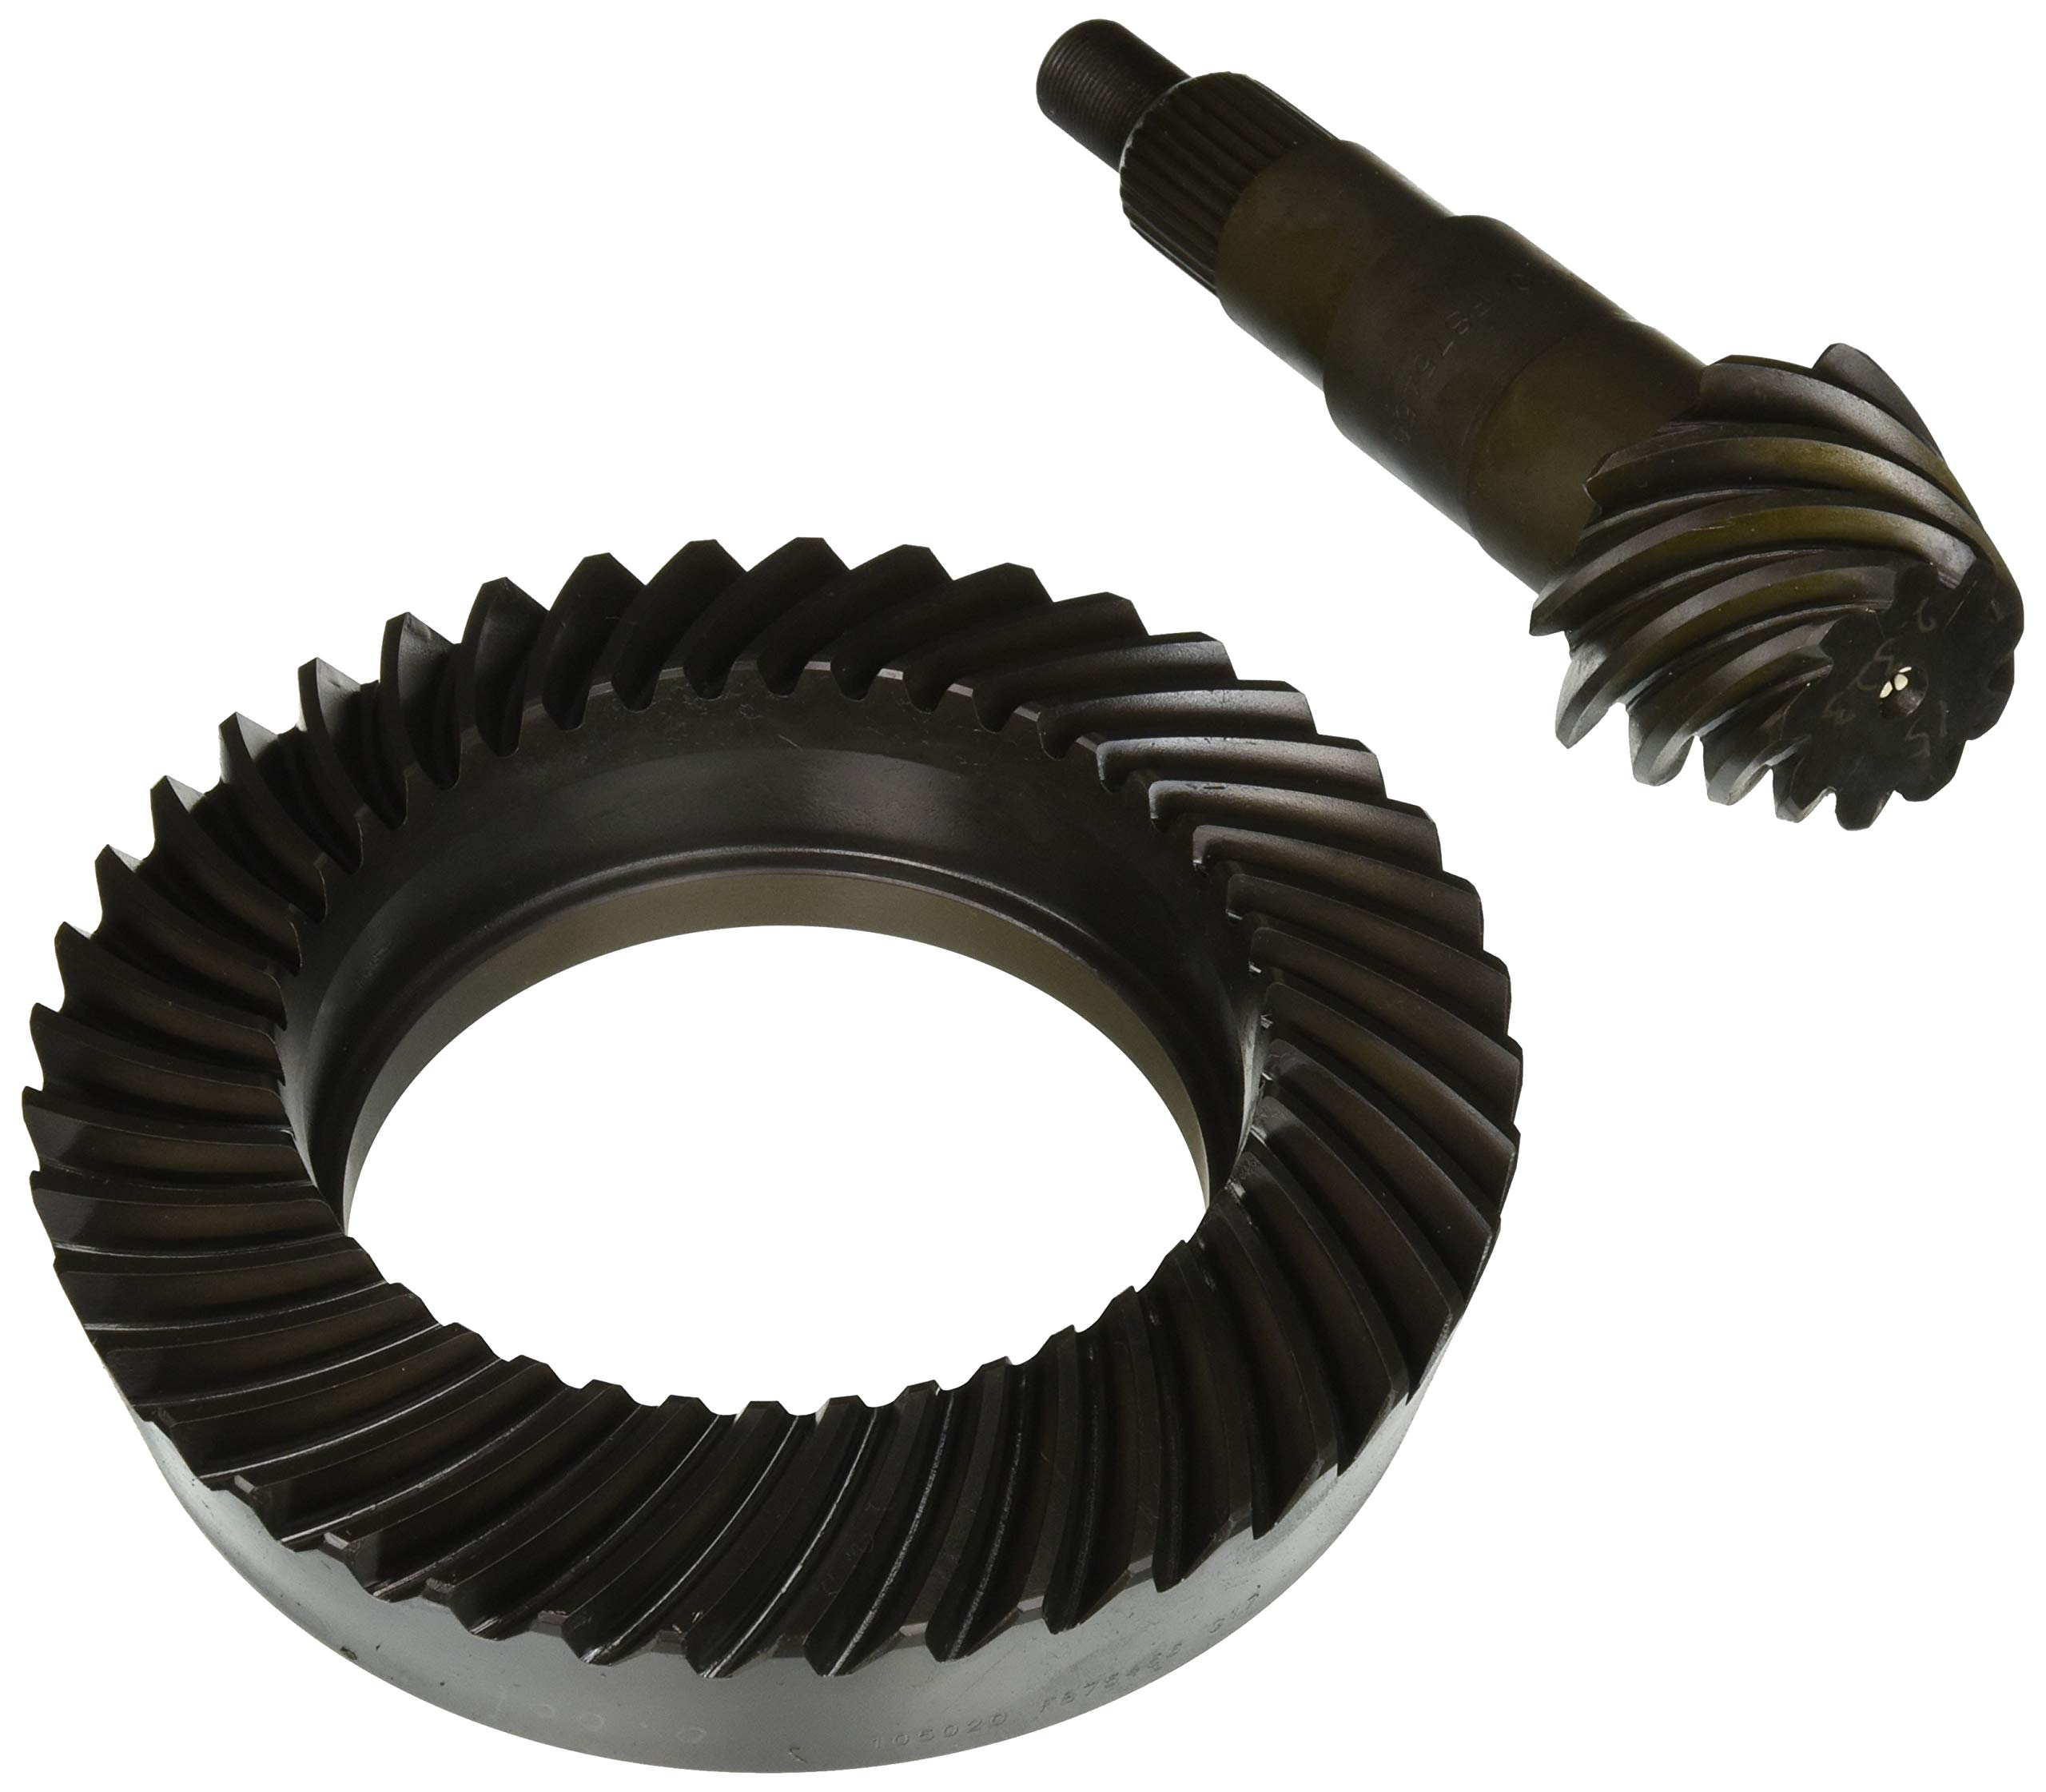 Motive Gear F875456 7.5'' Rear Ring and Pinion for Ford (4.56 Ratio)